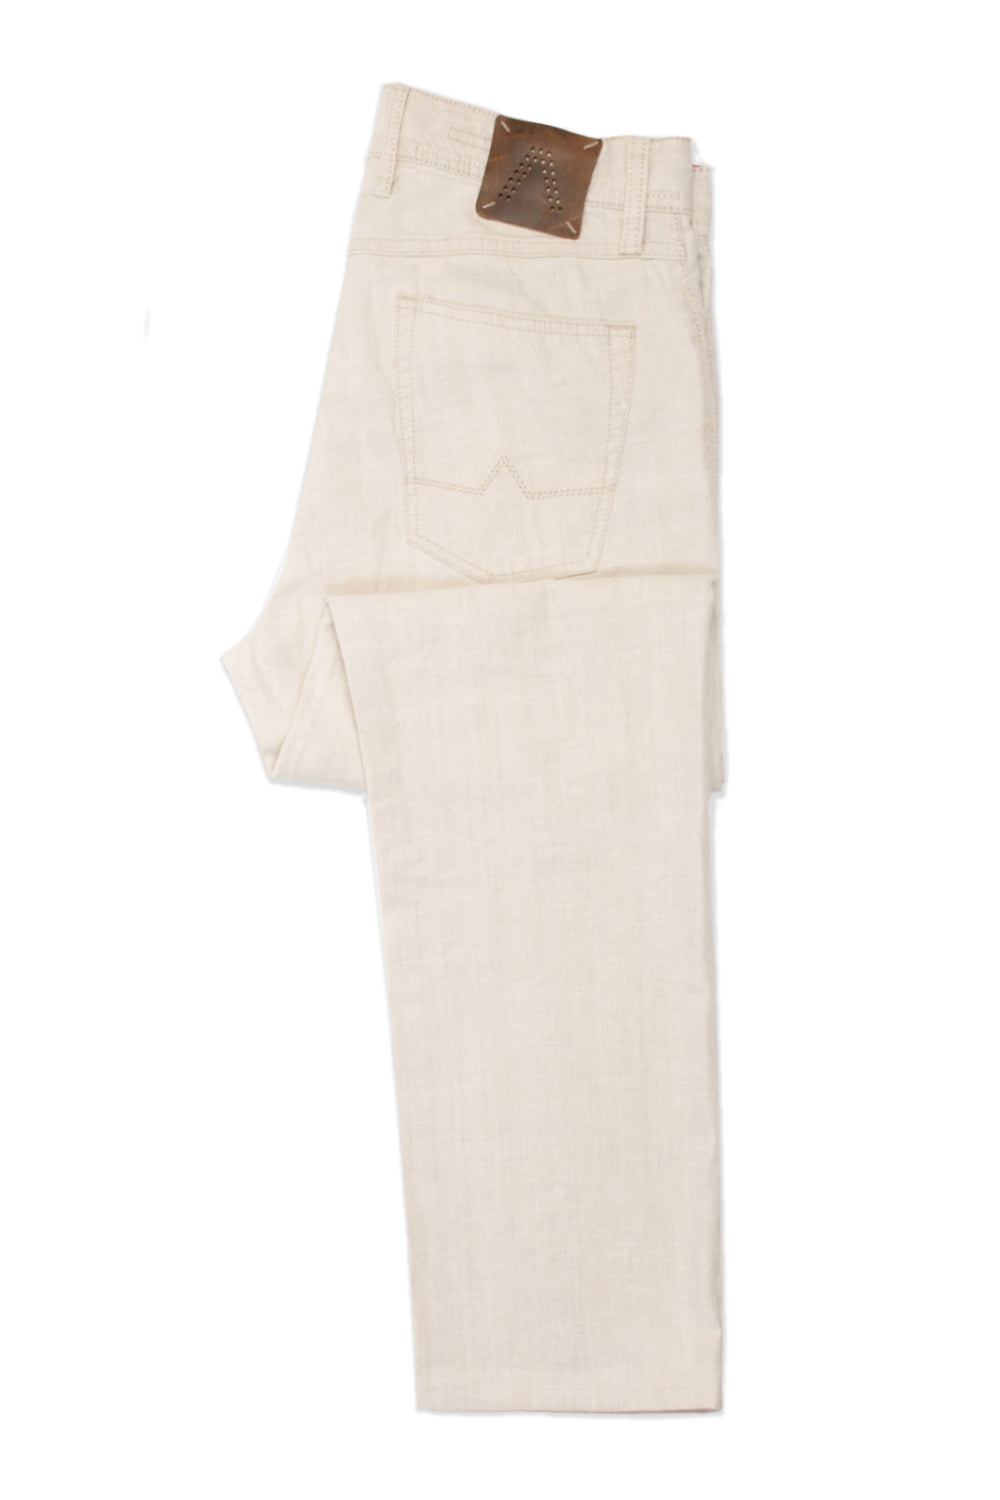 Alberto Beige Stone Modern Fit Linen Stretch Pants for Luxmrkt.com Menswear Consignment Edmonton